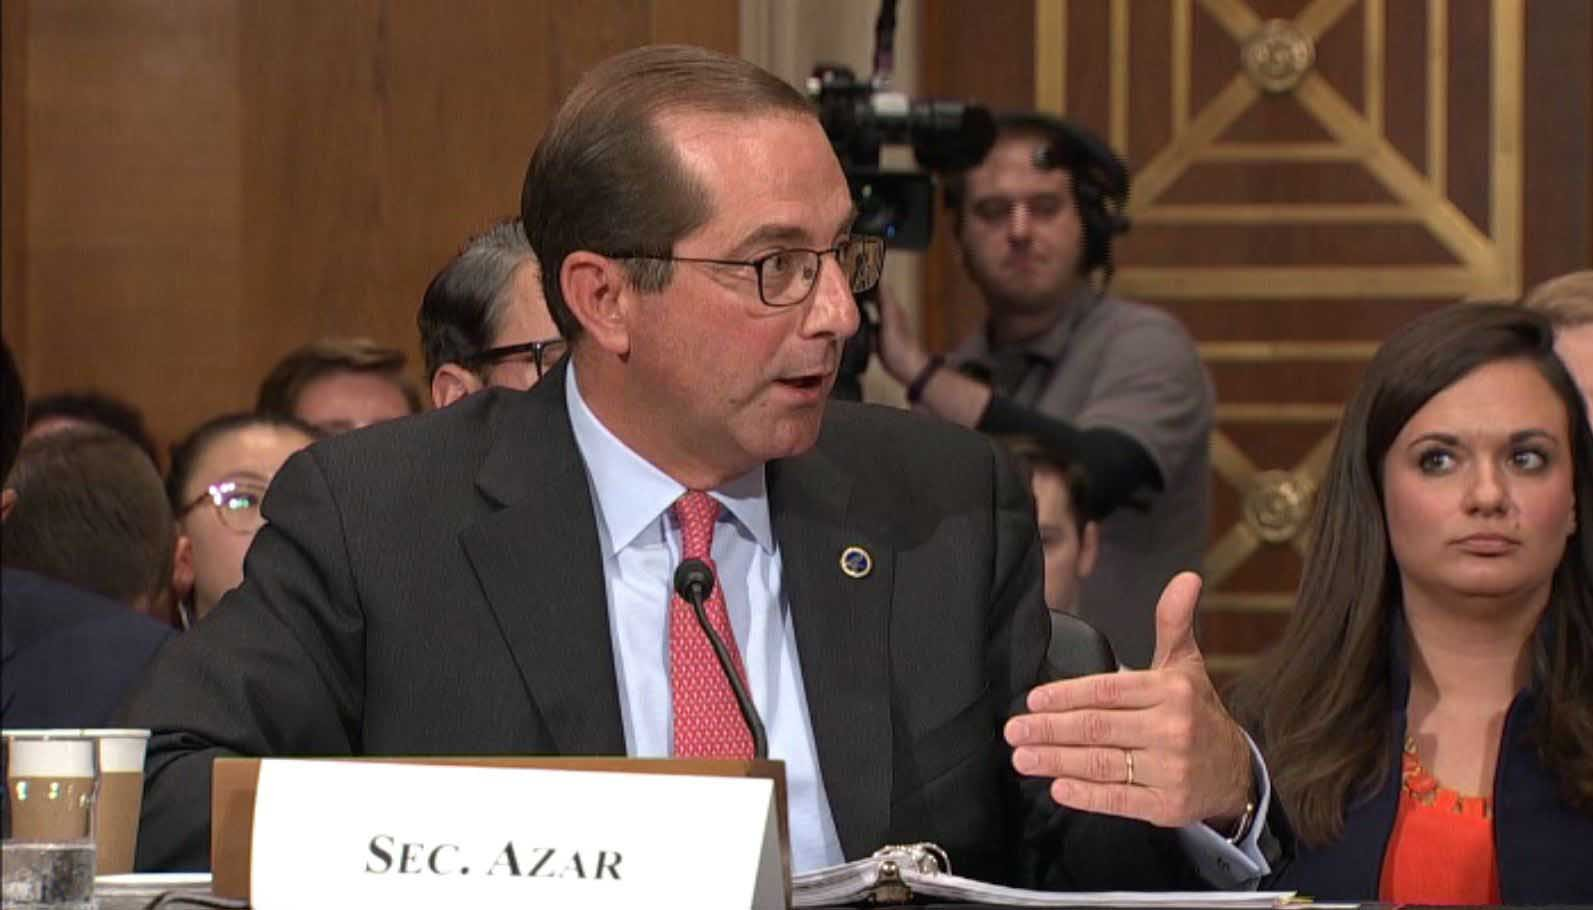 HHS Secretary Alex Azar was grilled on Capitol Hill as he gave details on the Trump administration's strategy to lower prescription drug prices. (Source: CNN/Pool)